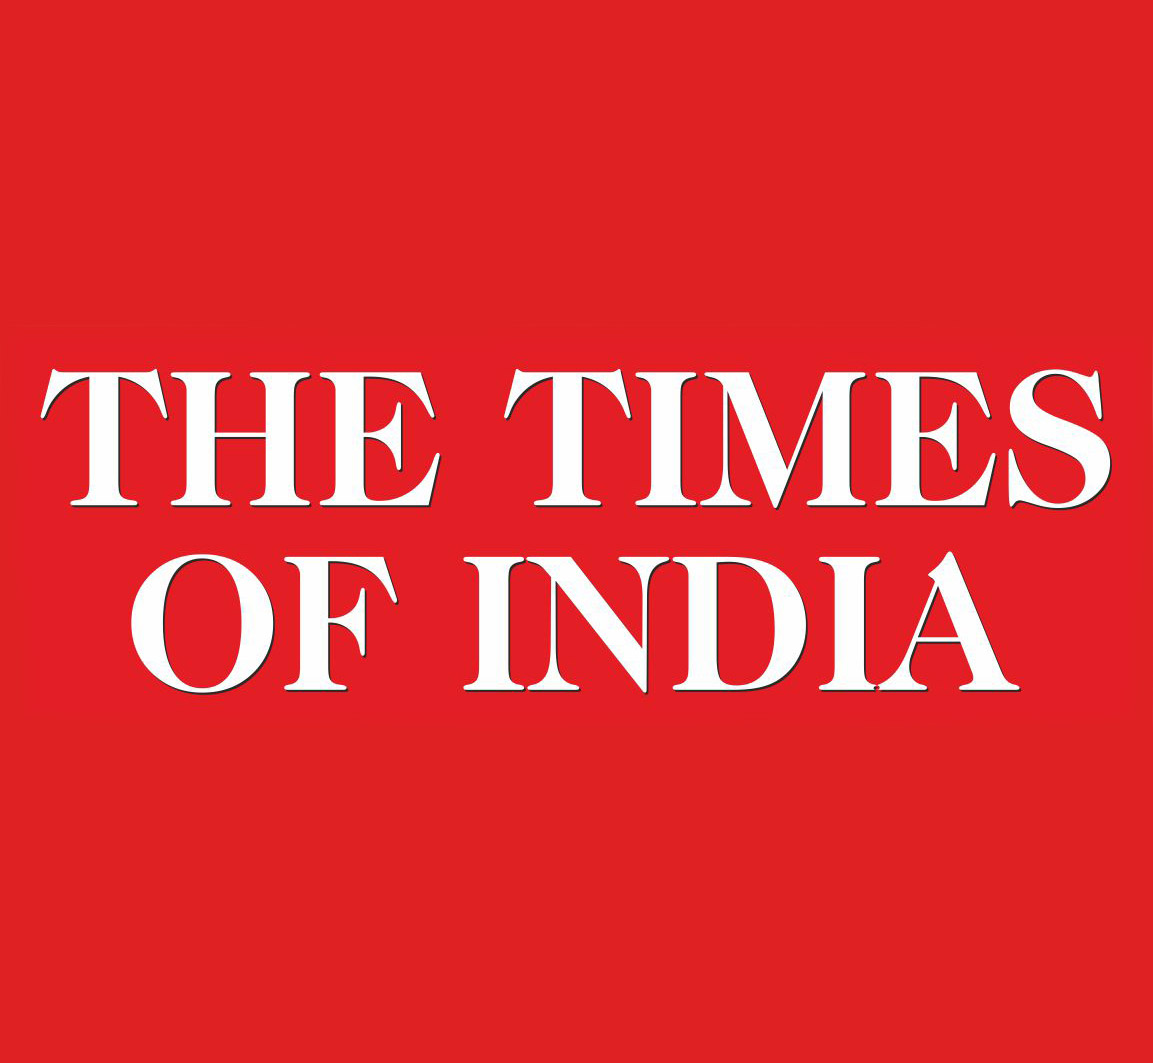 Times of India: Model proposed for solving problems through global human unification